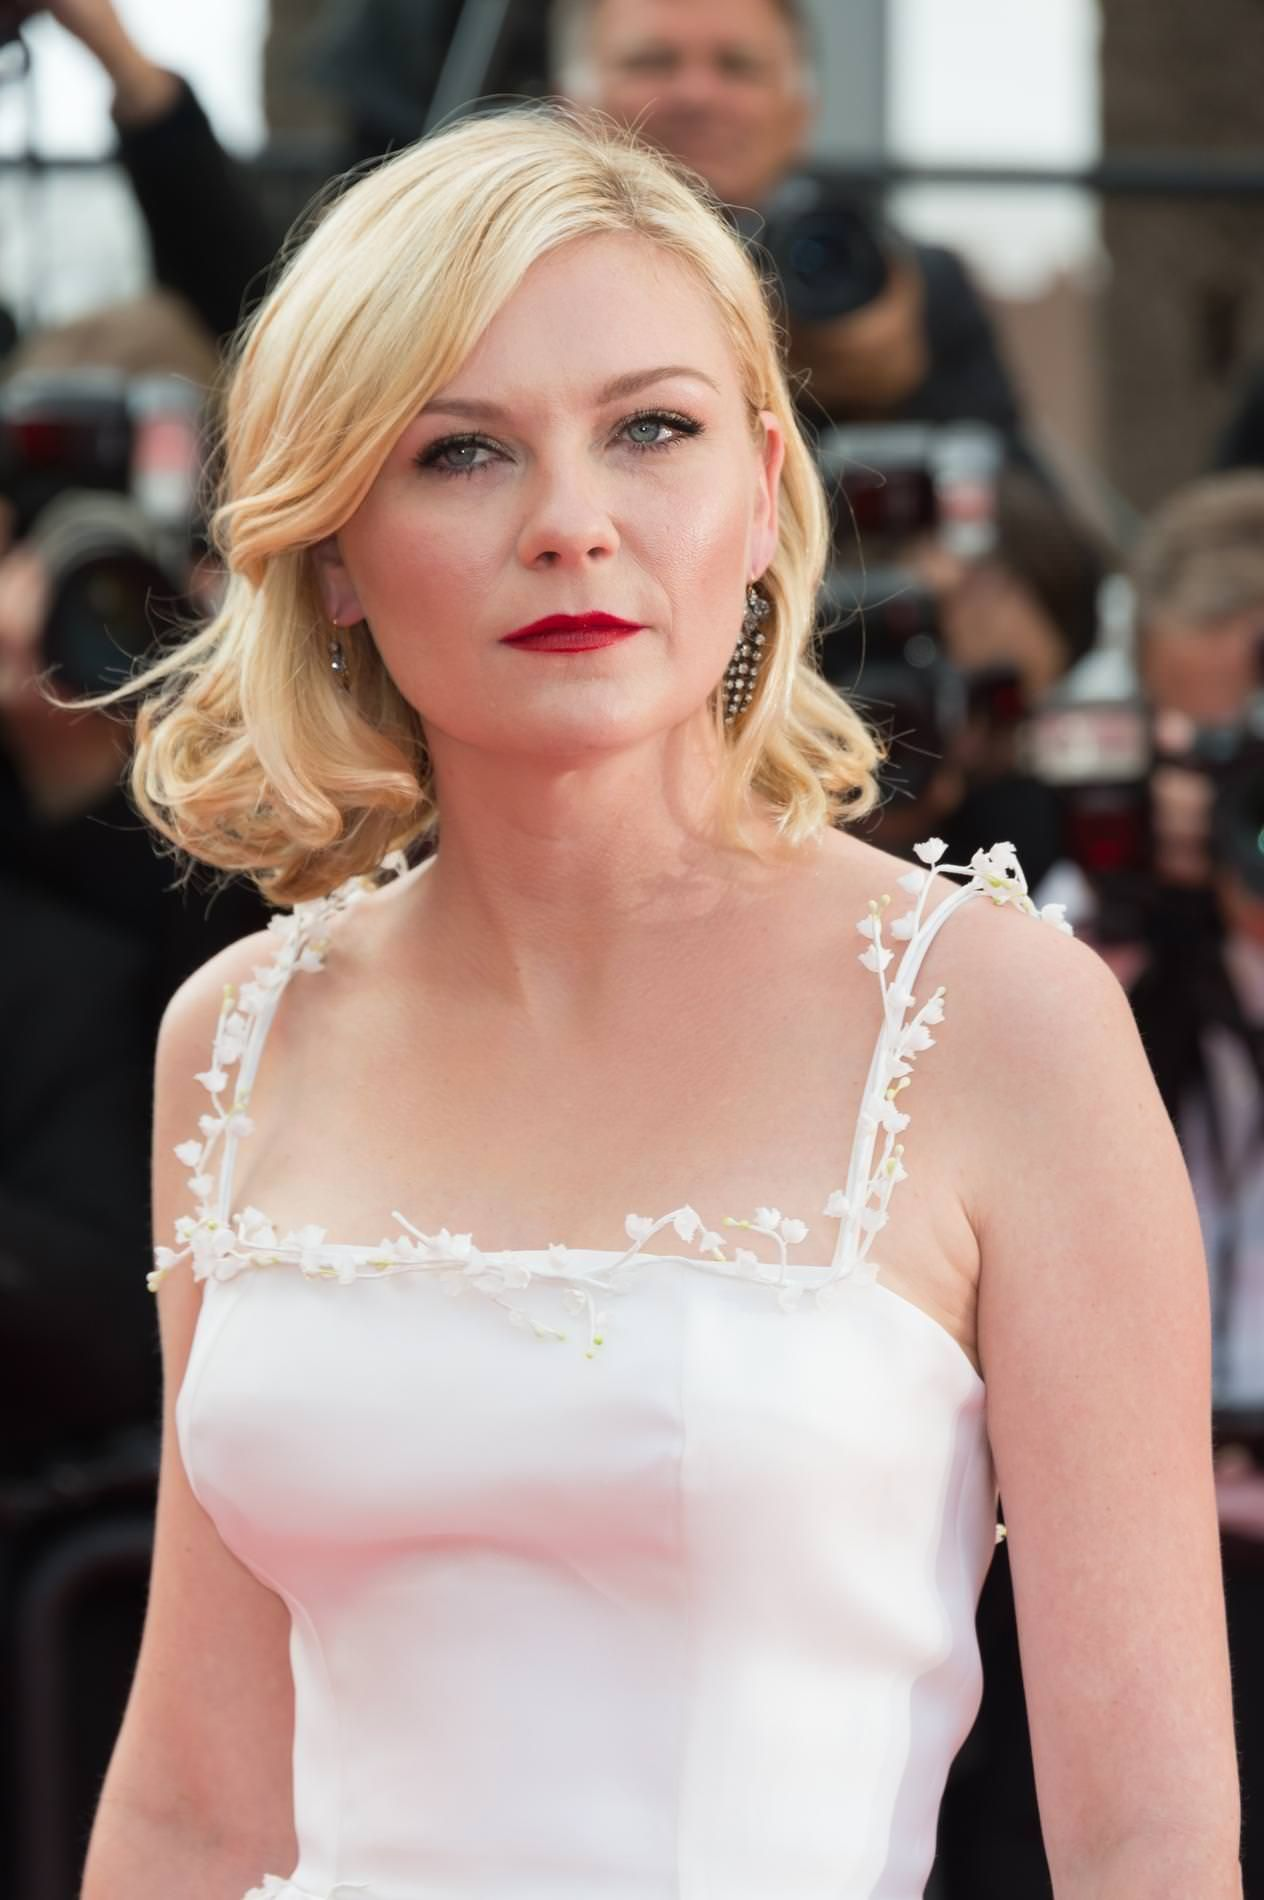 Communication on this topic: Georgia kousoulou, kirsten-dunst-old-lady-tits/